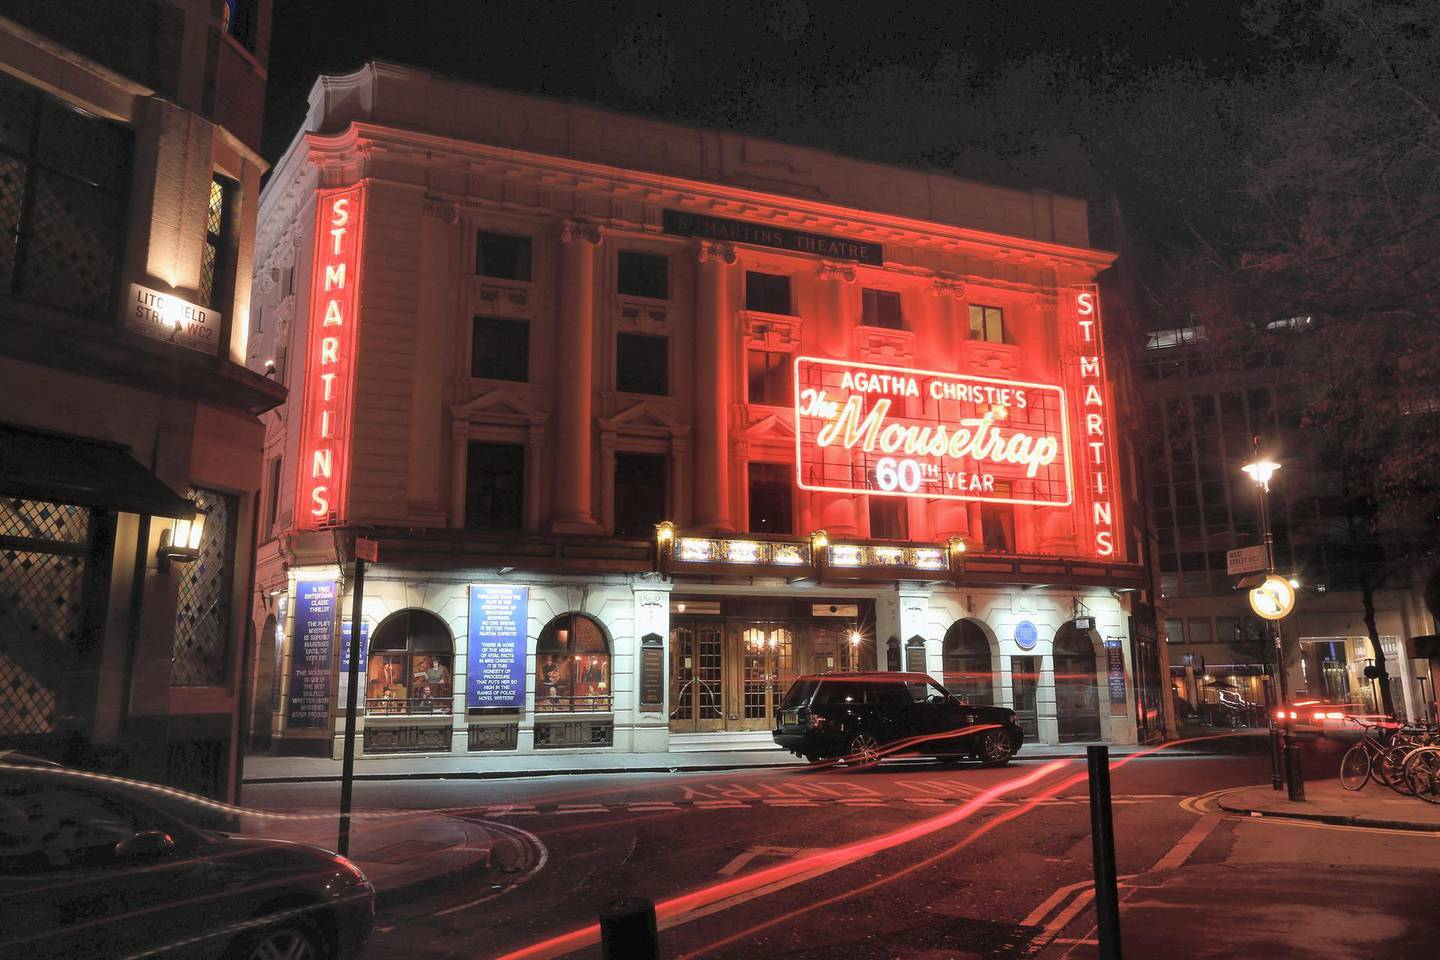 LONDON, ENGLAND - MARCH 29:  St Martins Theatre in the West End showing Agatha Christie's 'The Mousetrap', which is the longest running show in the world, is illuminated at night on March 29, 2012 in London, England.  (Photo by Oli Scarff/Getty Images)